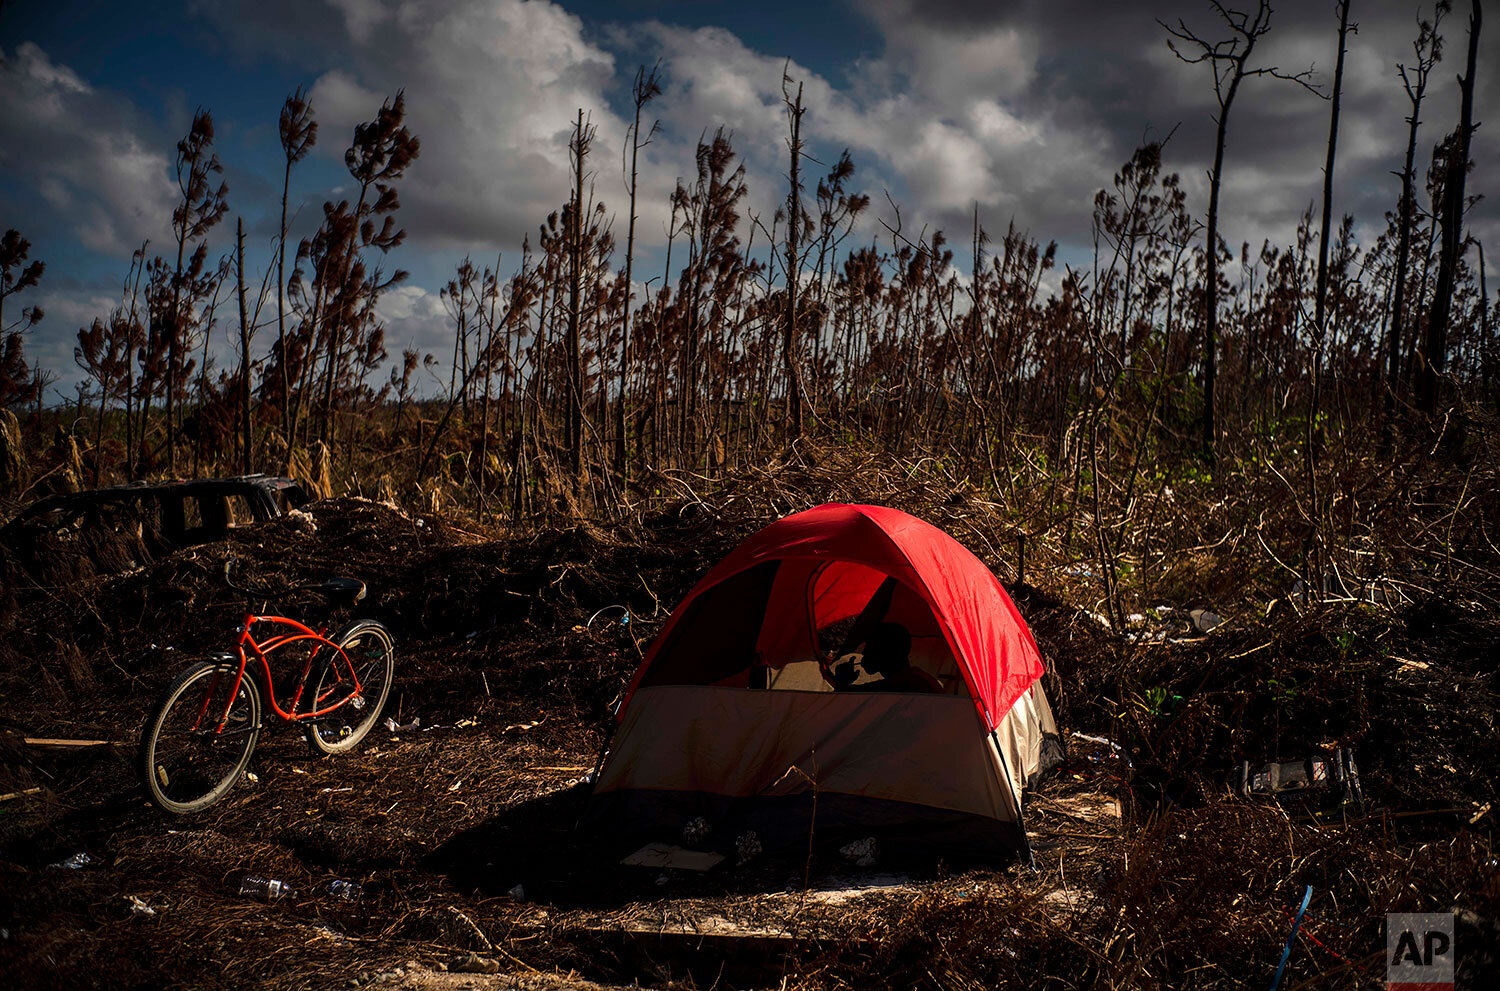 Haitian immigrant Francois Dickens, 22, displaced from his home destroyed by Hurricane Dorian rests in a tent in a forest in Abaco, Bahamas, Saturday, Sept. 28, 2019.  (AP Photo / Ramon Espinosa)